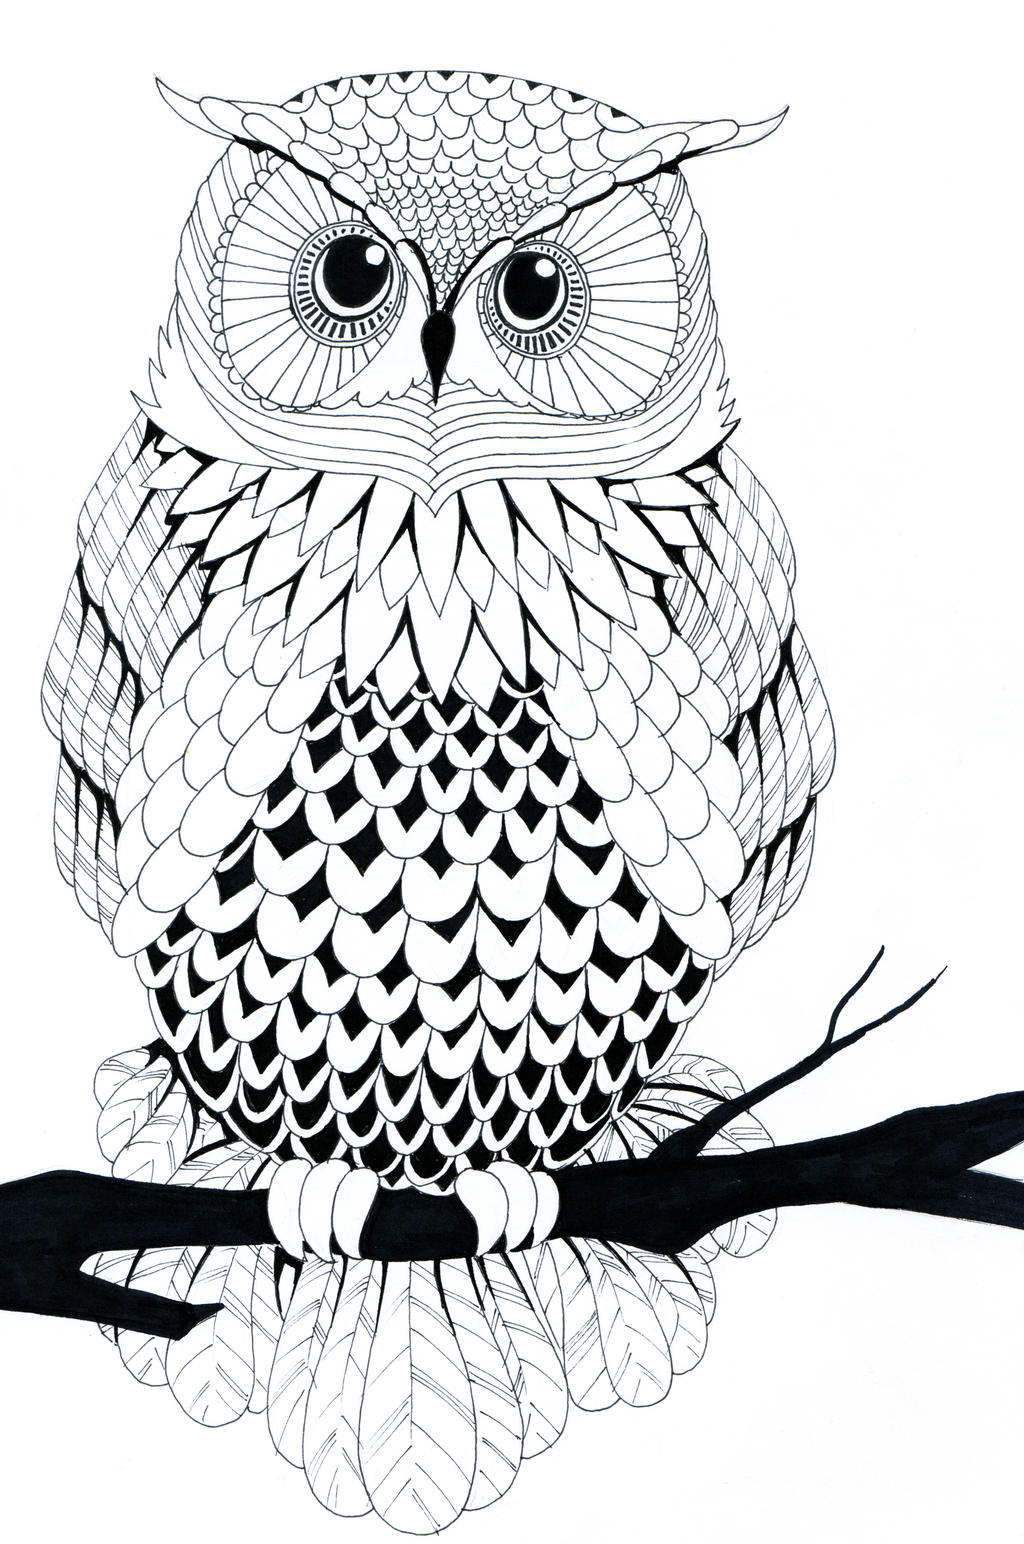 owl drawings owls drawing line coloring pages deviantart doodle clipart adults cool printable adult sketches volwassenen voor simple detailed colouring